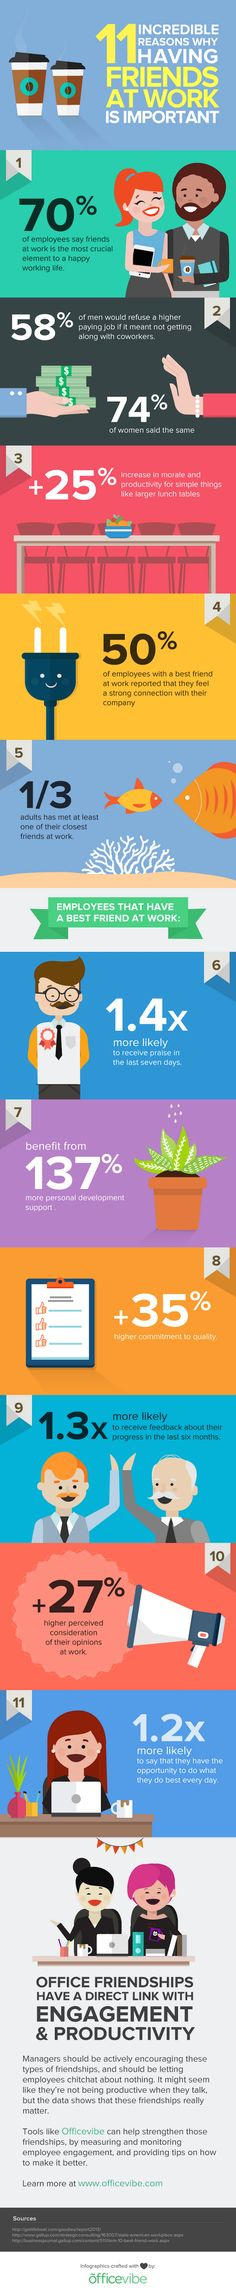 11 Reasons Having Friends at Work Makes You Happier #Infographic. via @hubspot blog